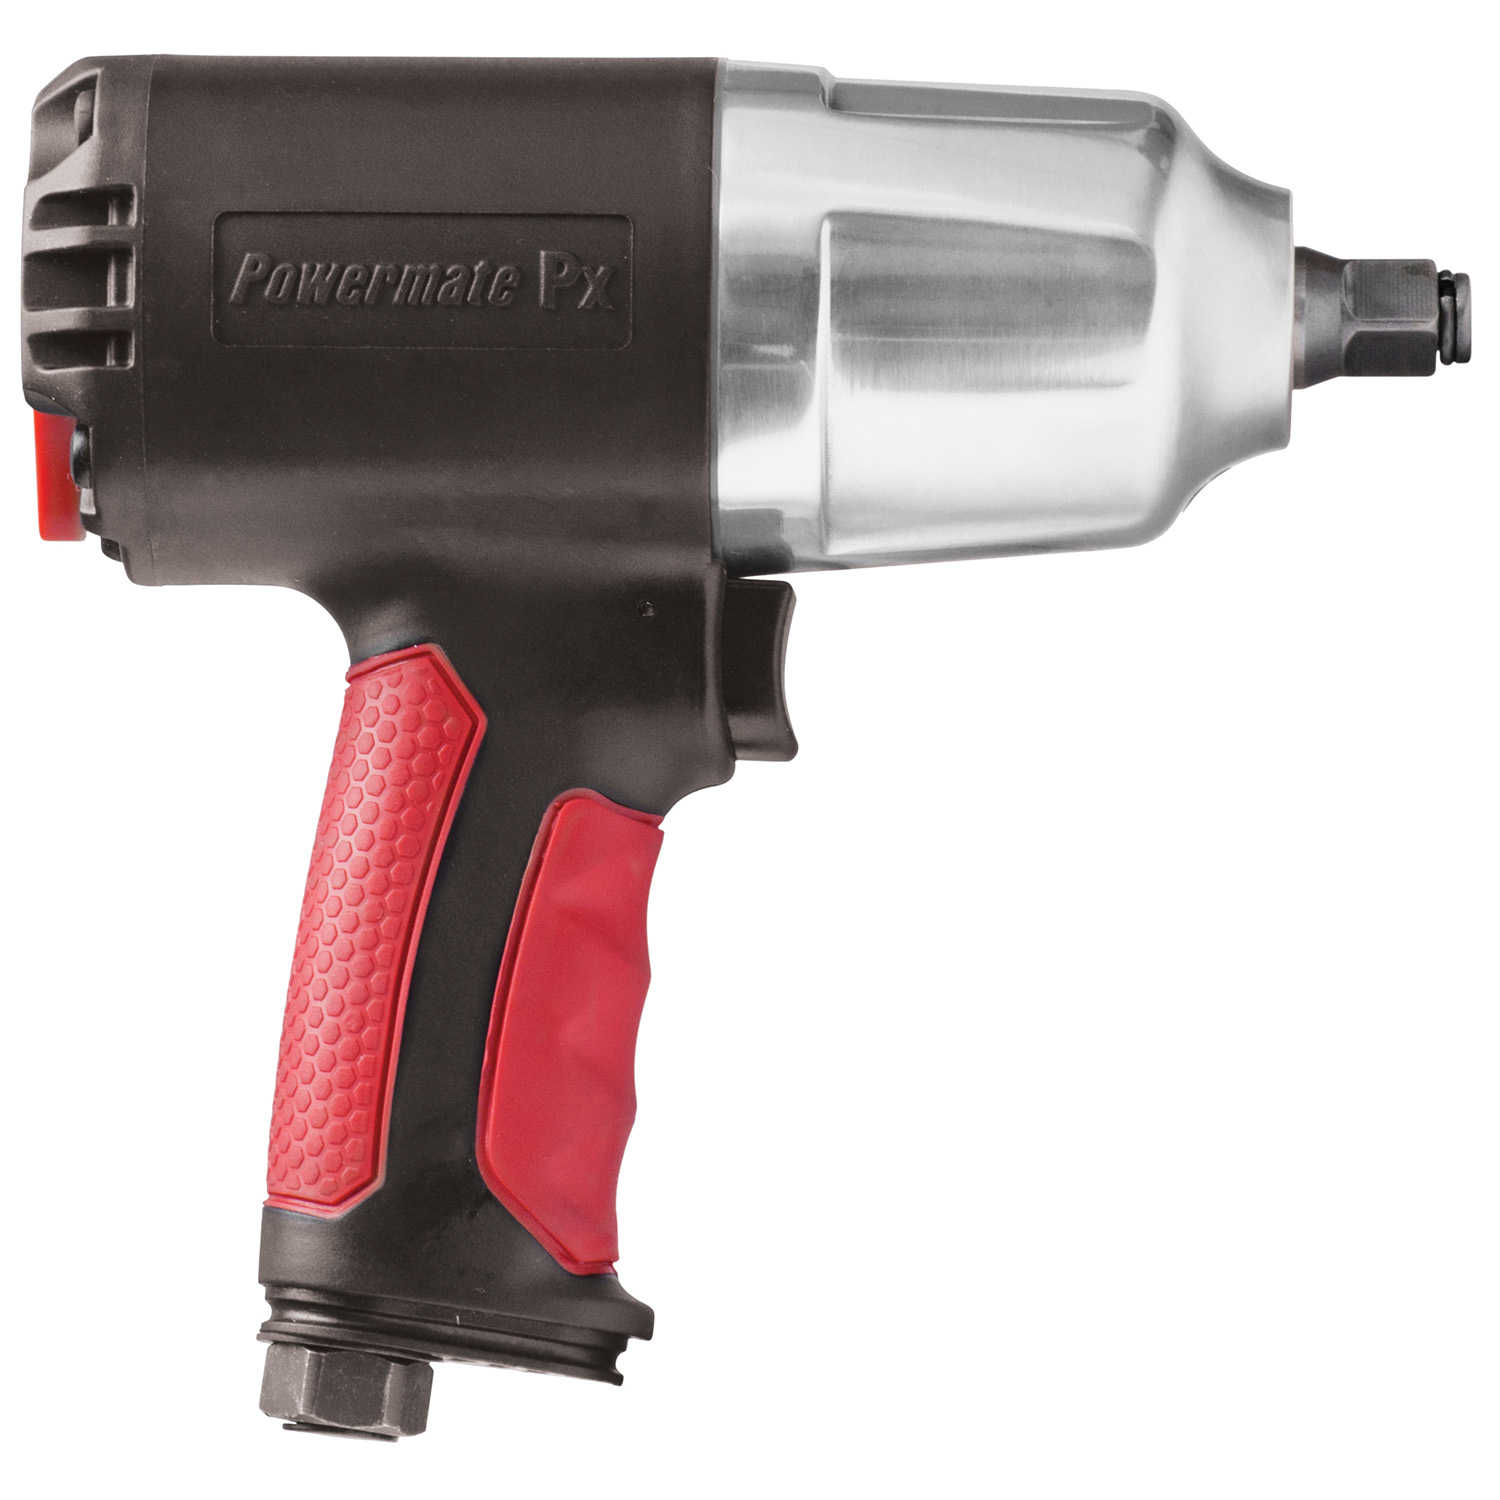 Powermate 1/2 in. Air Composite Impact Wrench